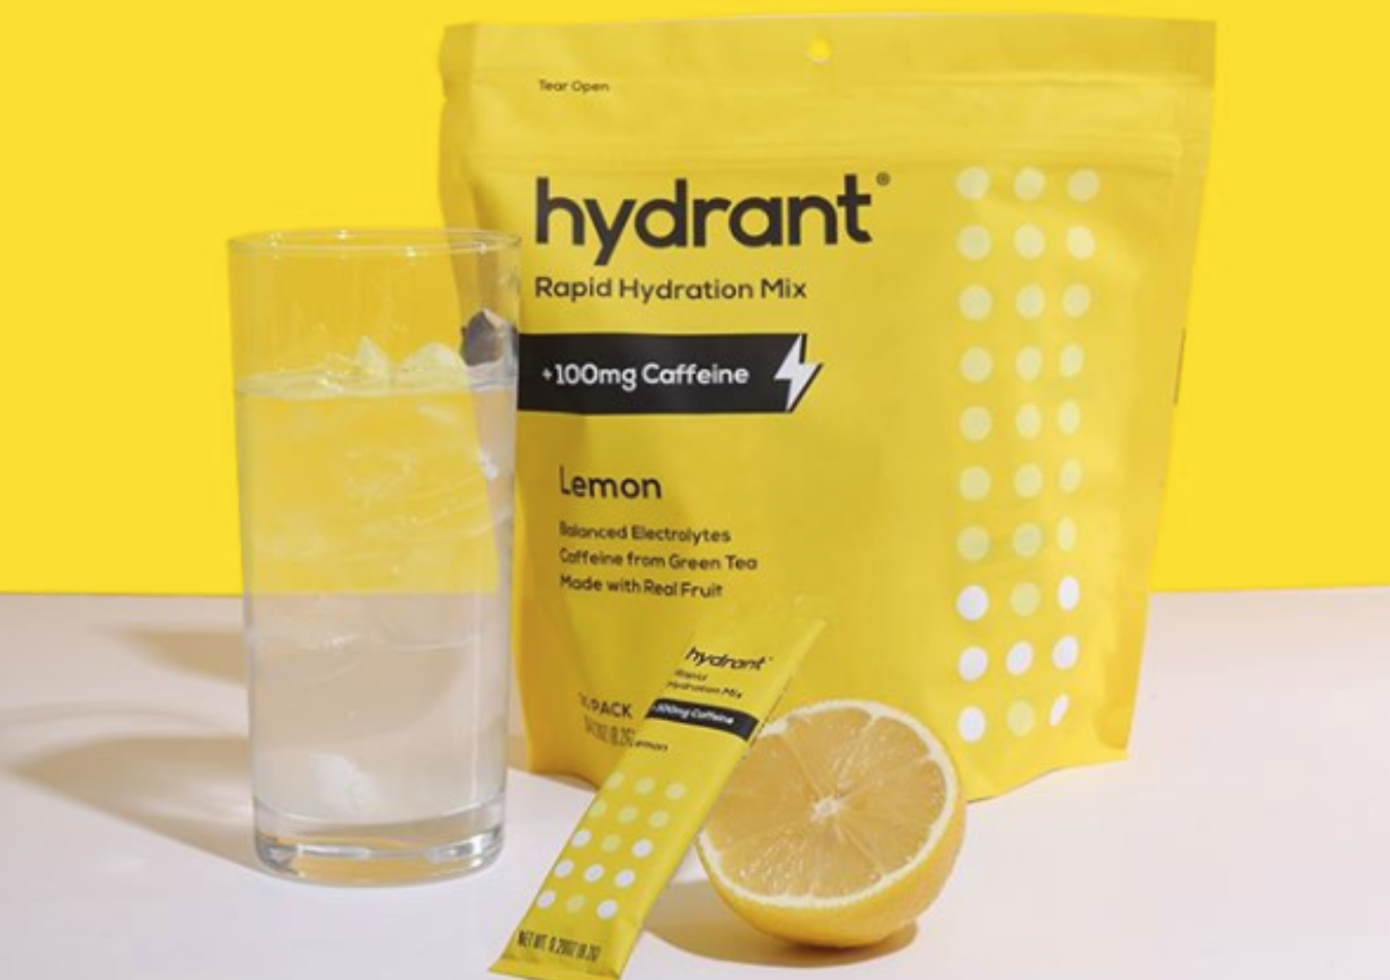 Hydrant raises $5.7 million Series A to help consumers hydrate faster